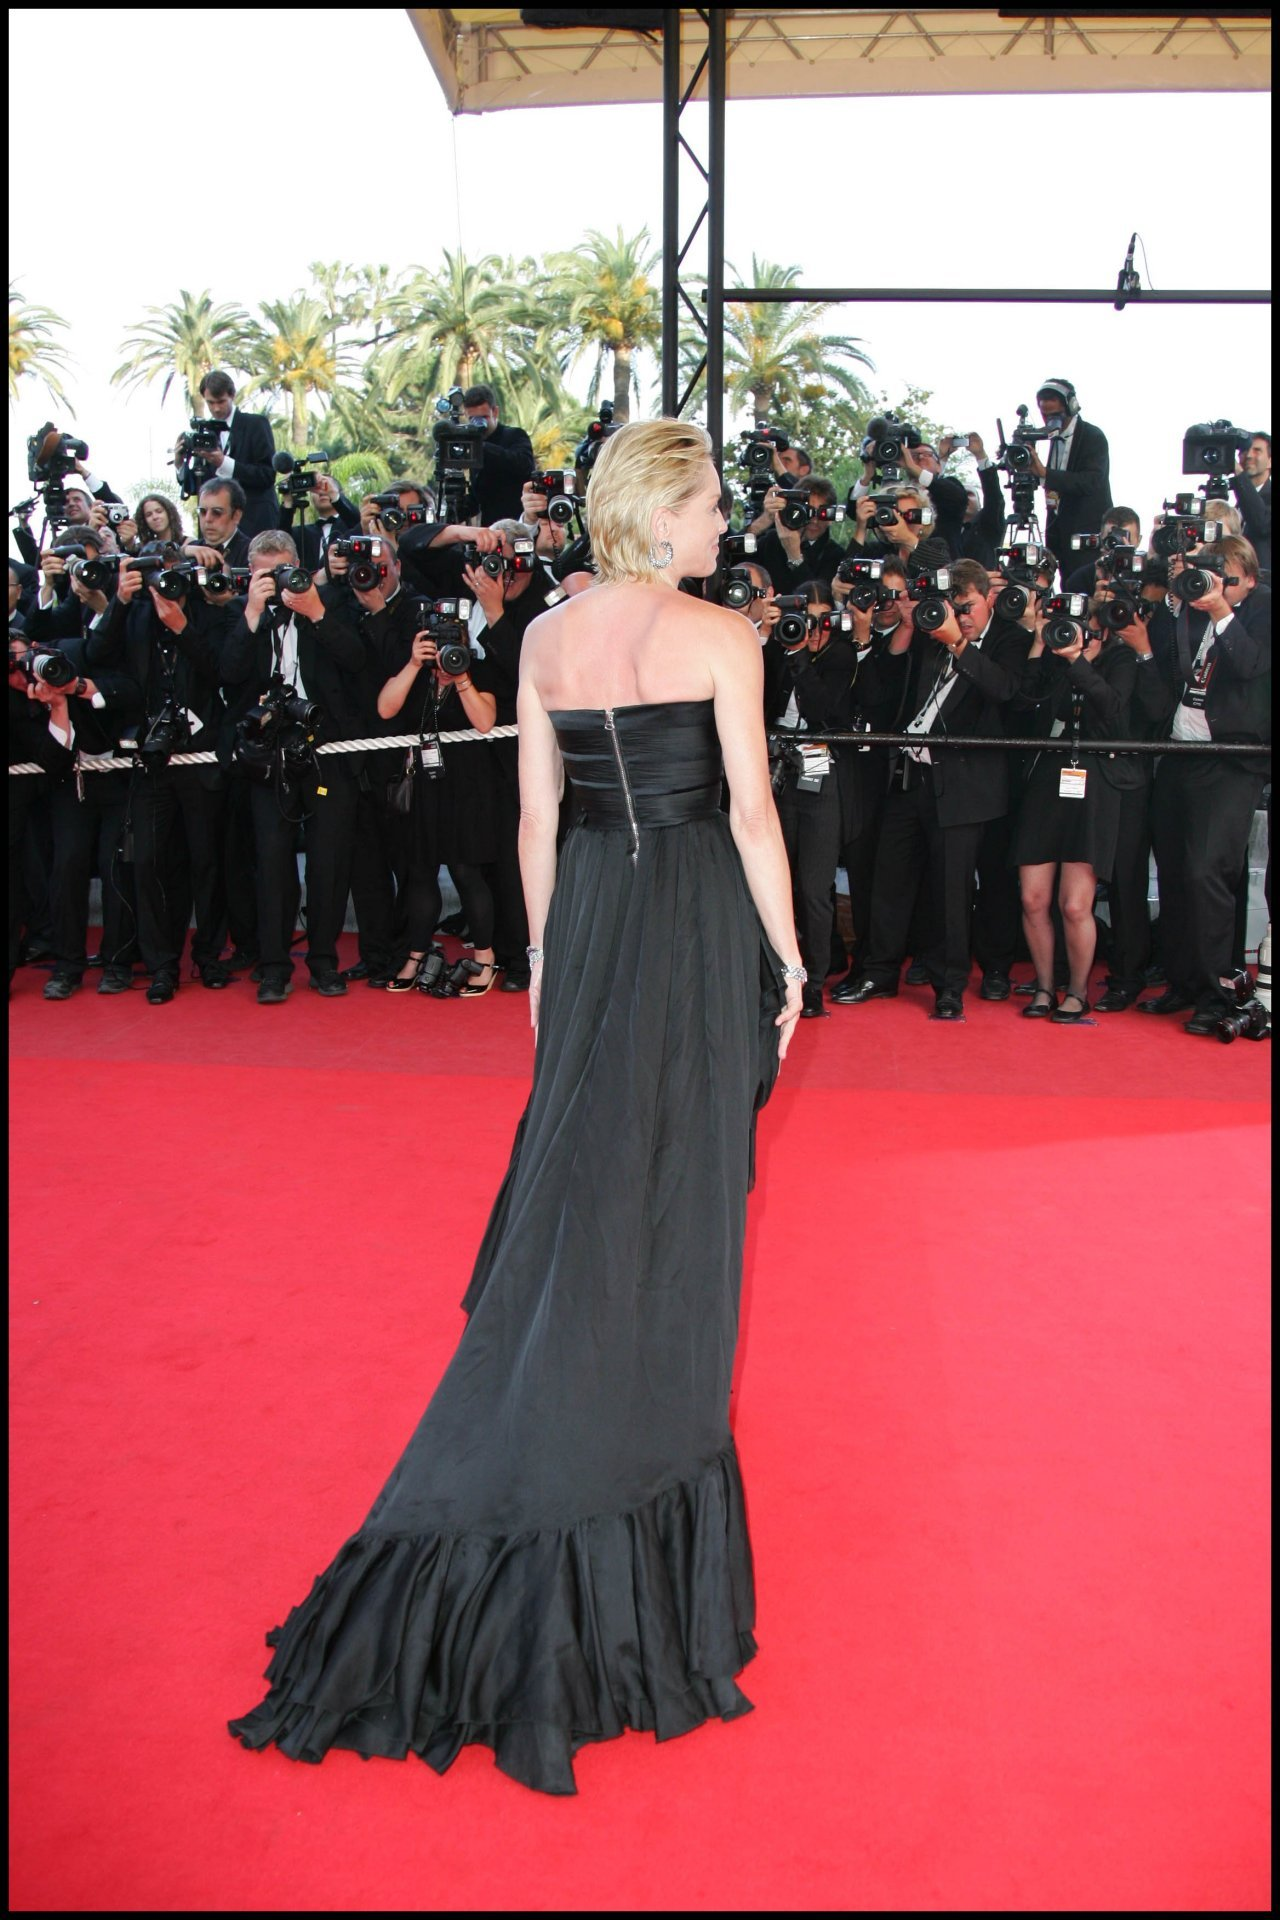 Sharon Stone leaked wallpapers